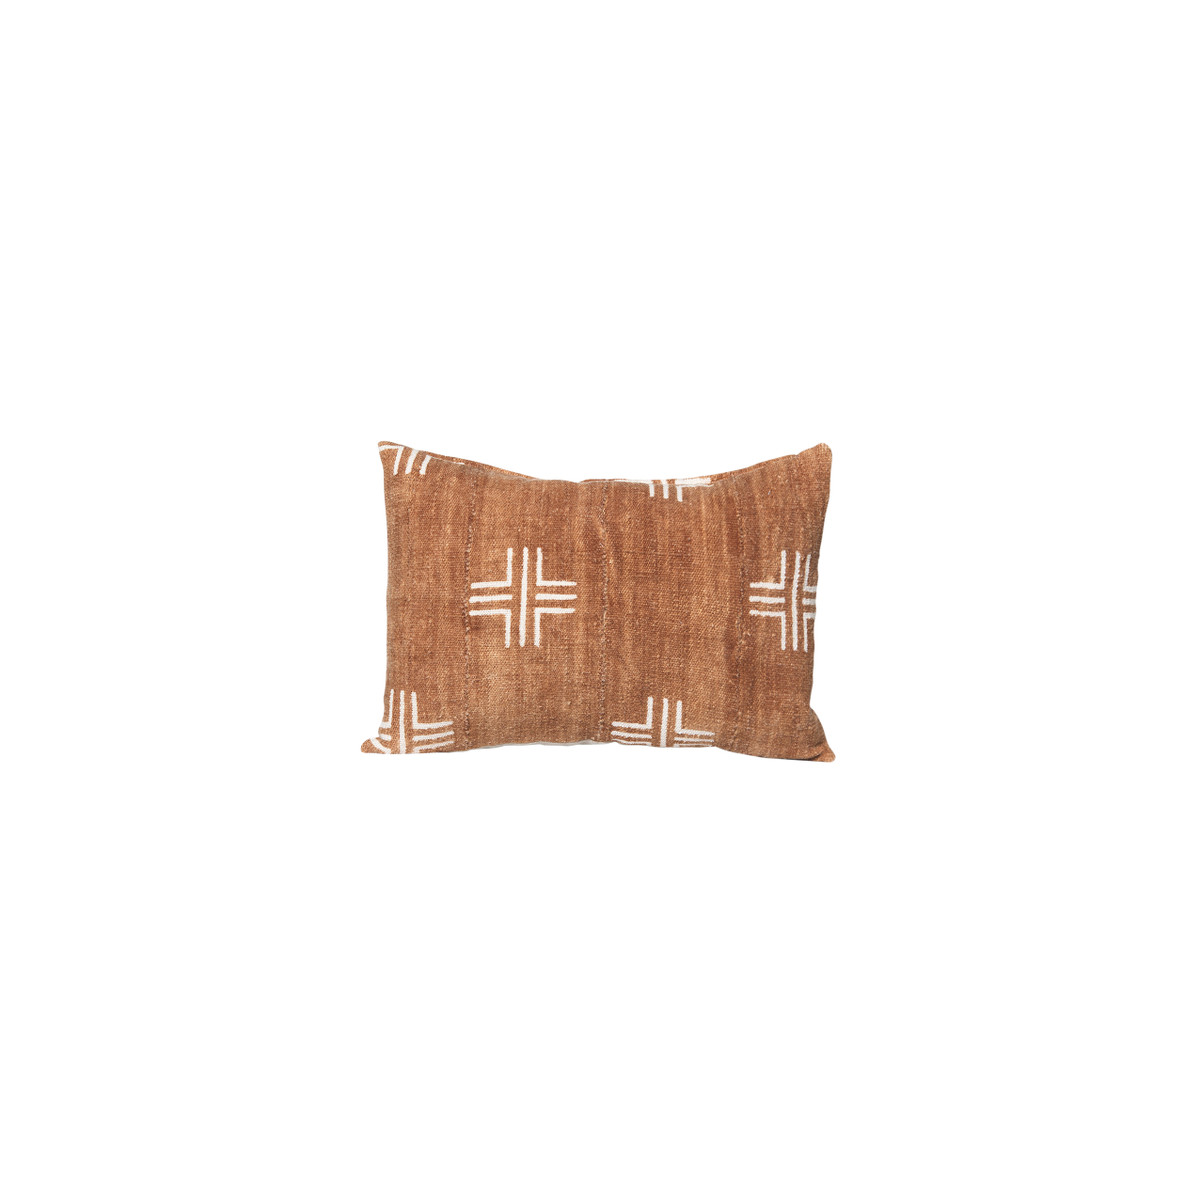 Taos Lumbar - Mud Cloth Rust Cross Pillow 14 x 20 - Front